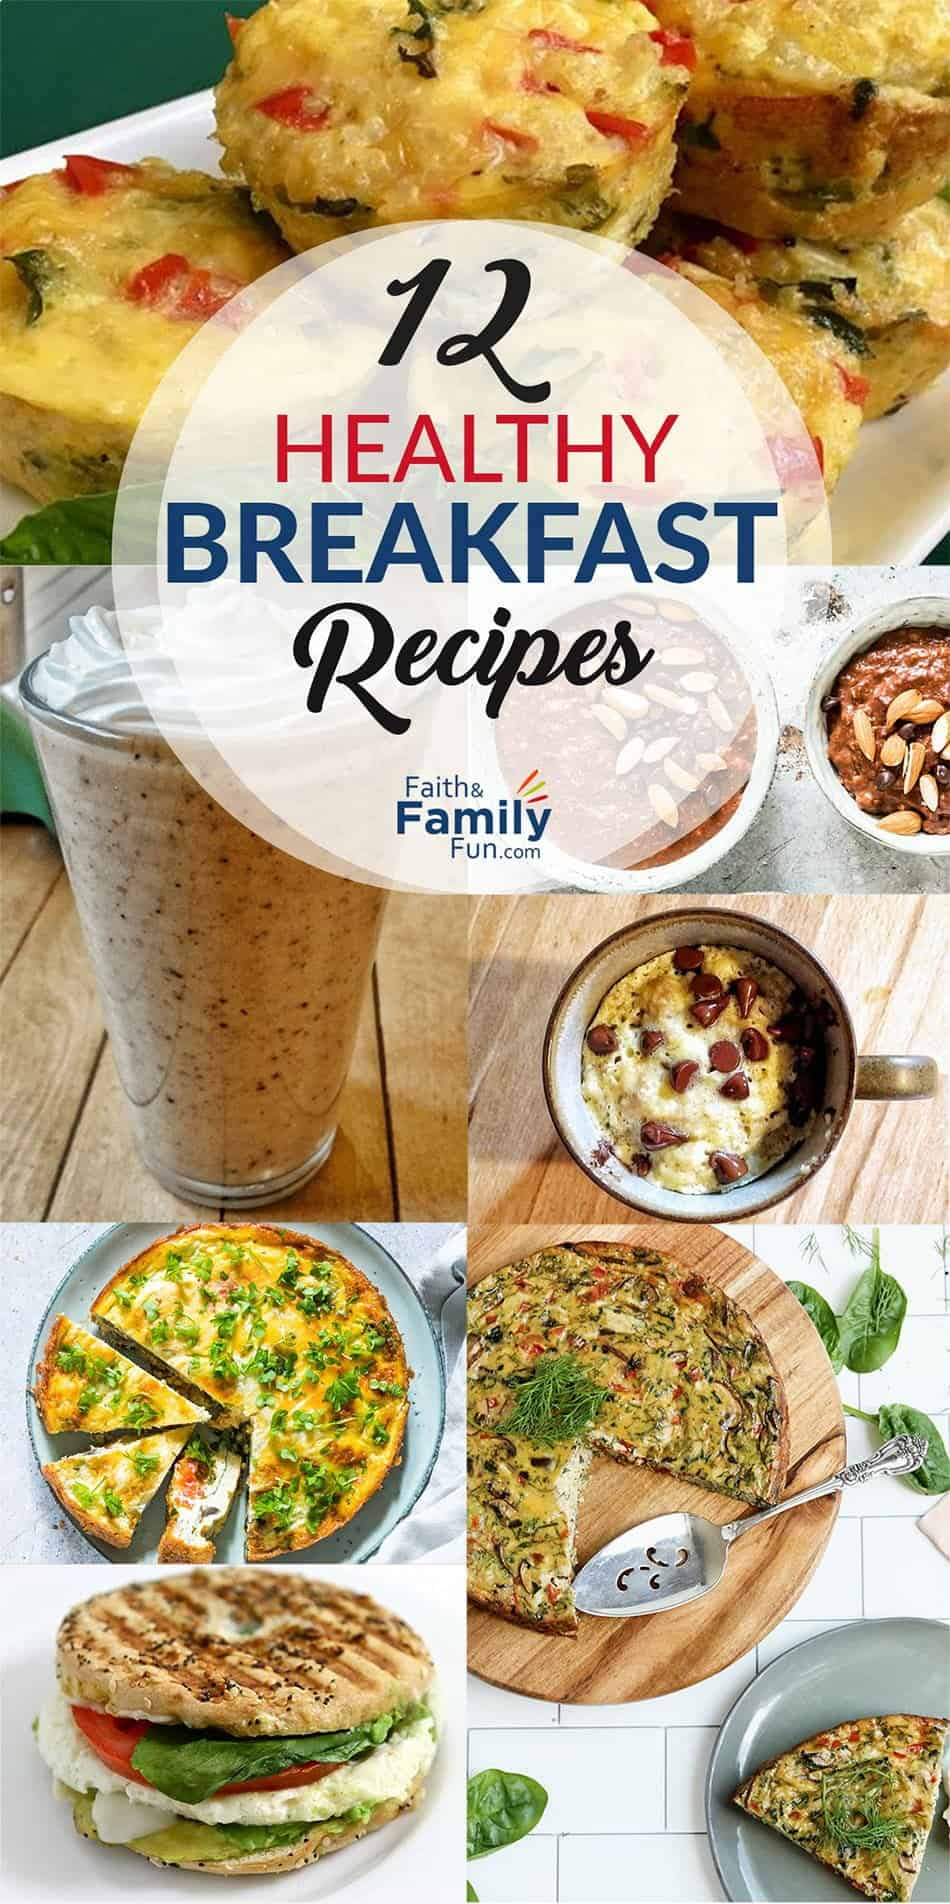 12 Healthy And Delicious Breakfast Recipes